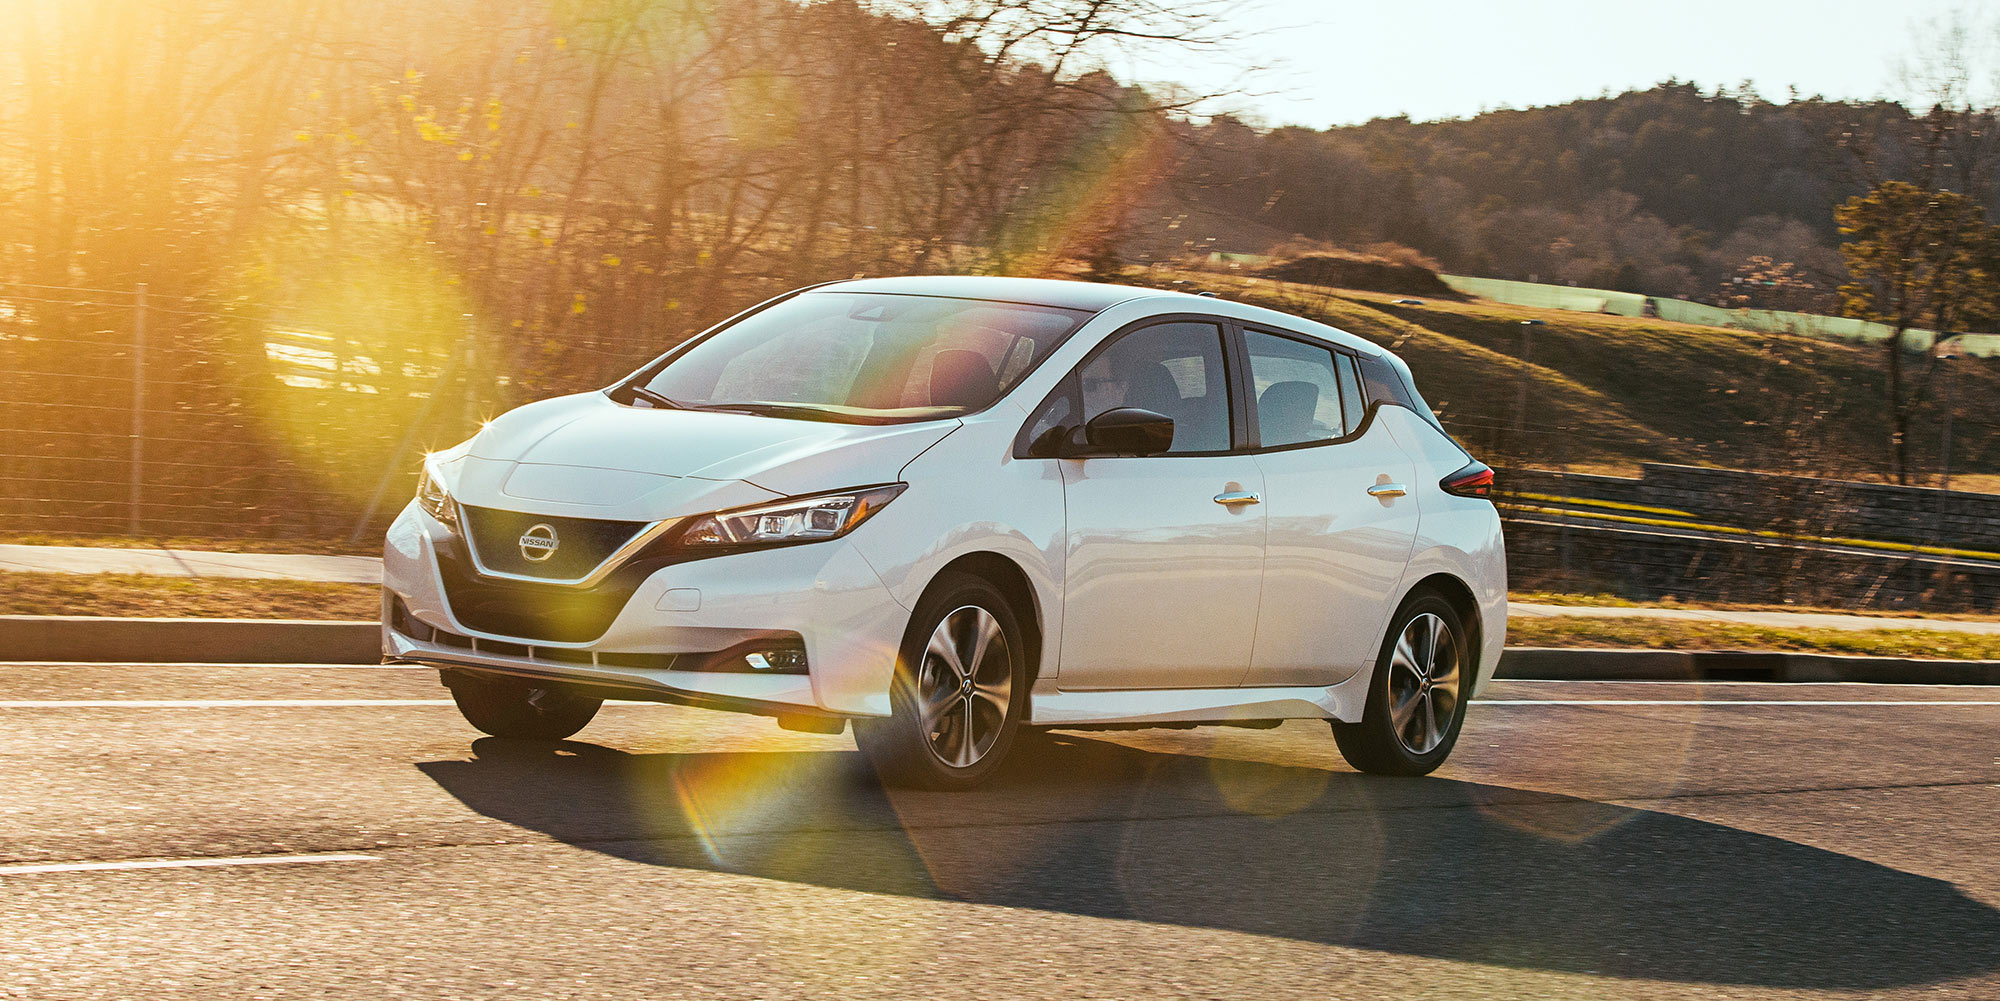 The Leaf has been Nissan's sole EV in the US for a decade.